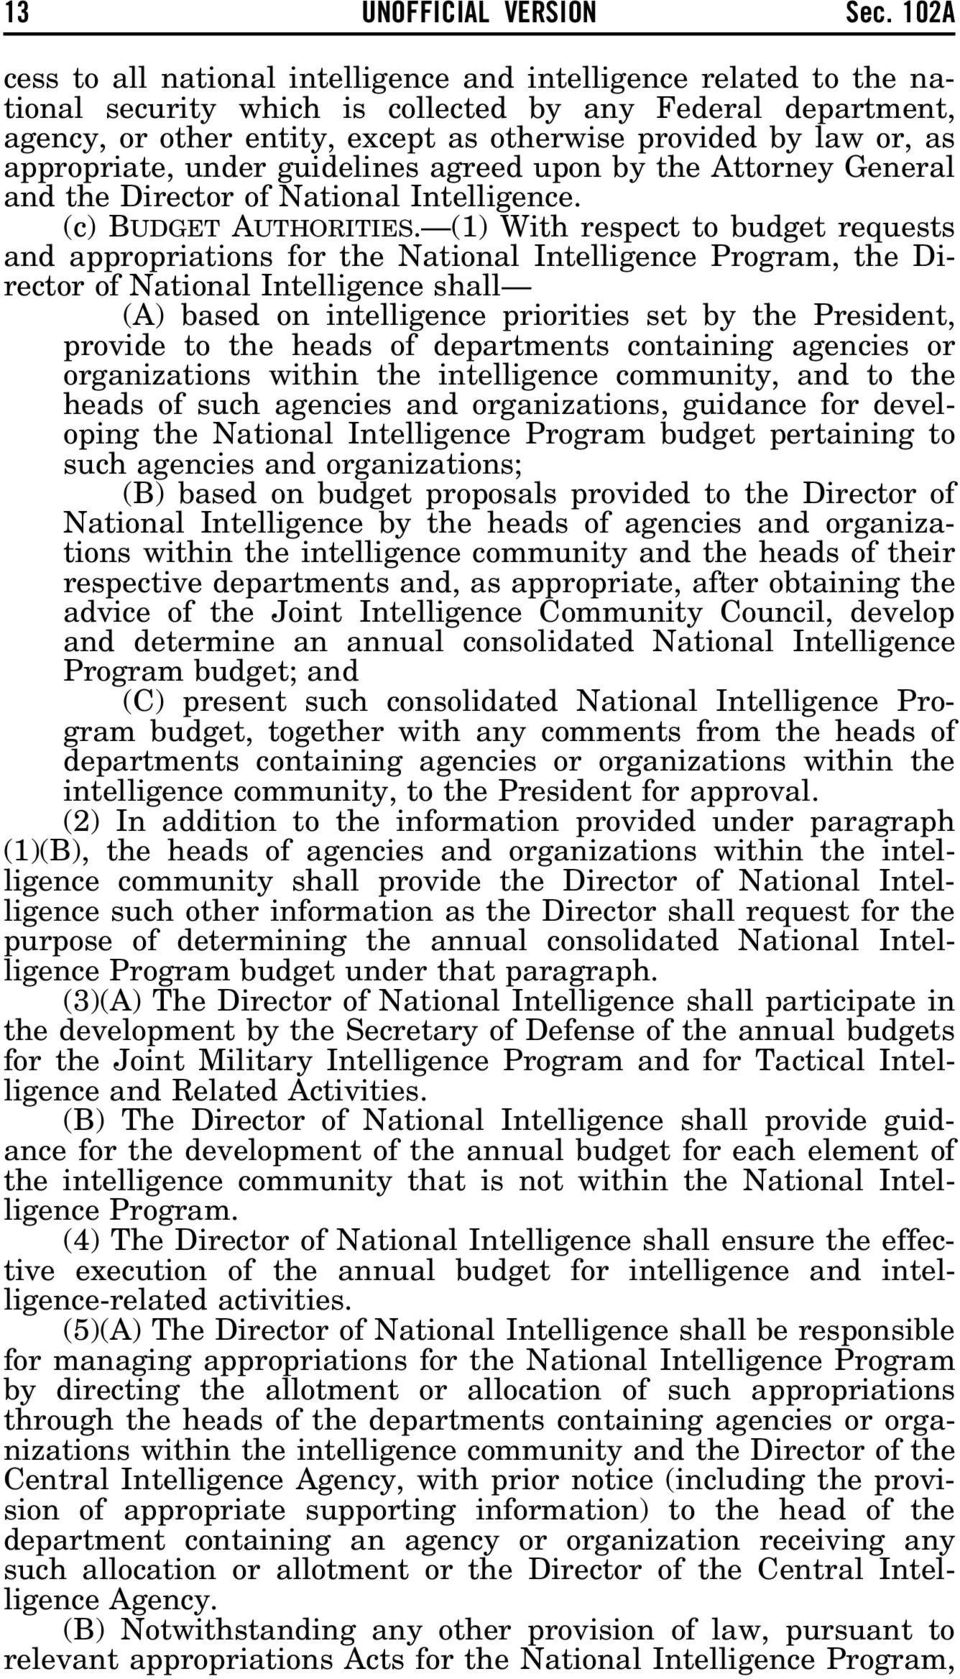 as appropriate, under guidelines agreed upon by the Attorney General and the Director of National Intelligence. (c) BUDGET AUTHORITIES.